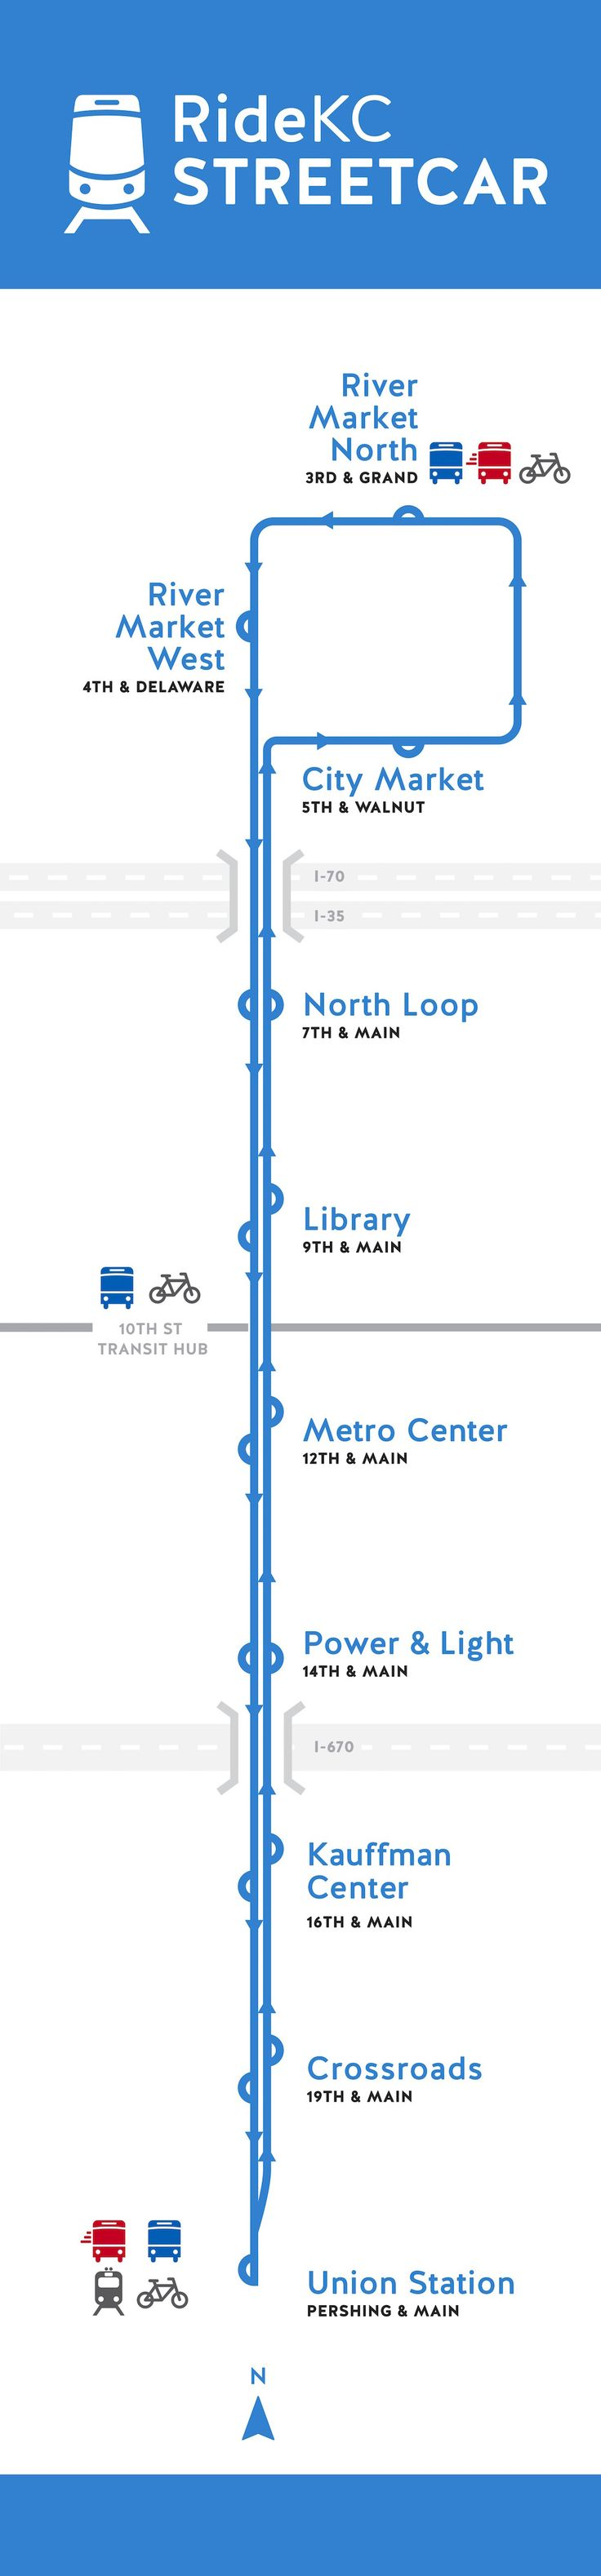 The KC Streetcar project is a two-mile route running along Main Street in downtown KC connecting KC's River Market area to Crown Center and Union Station.